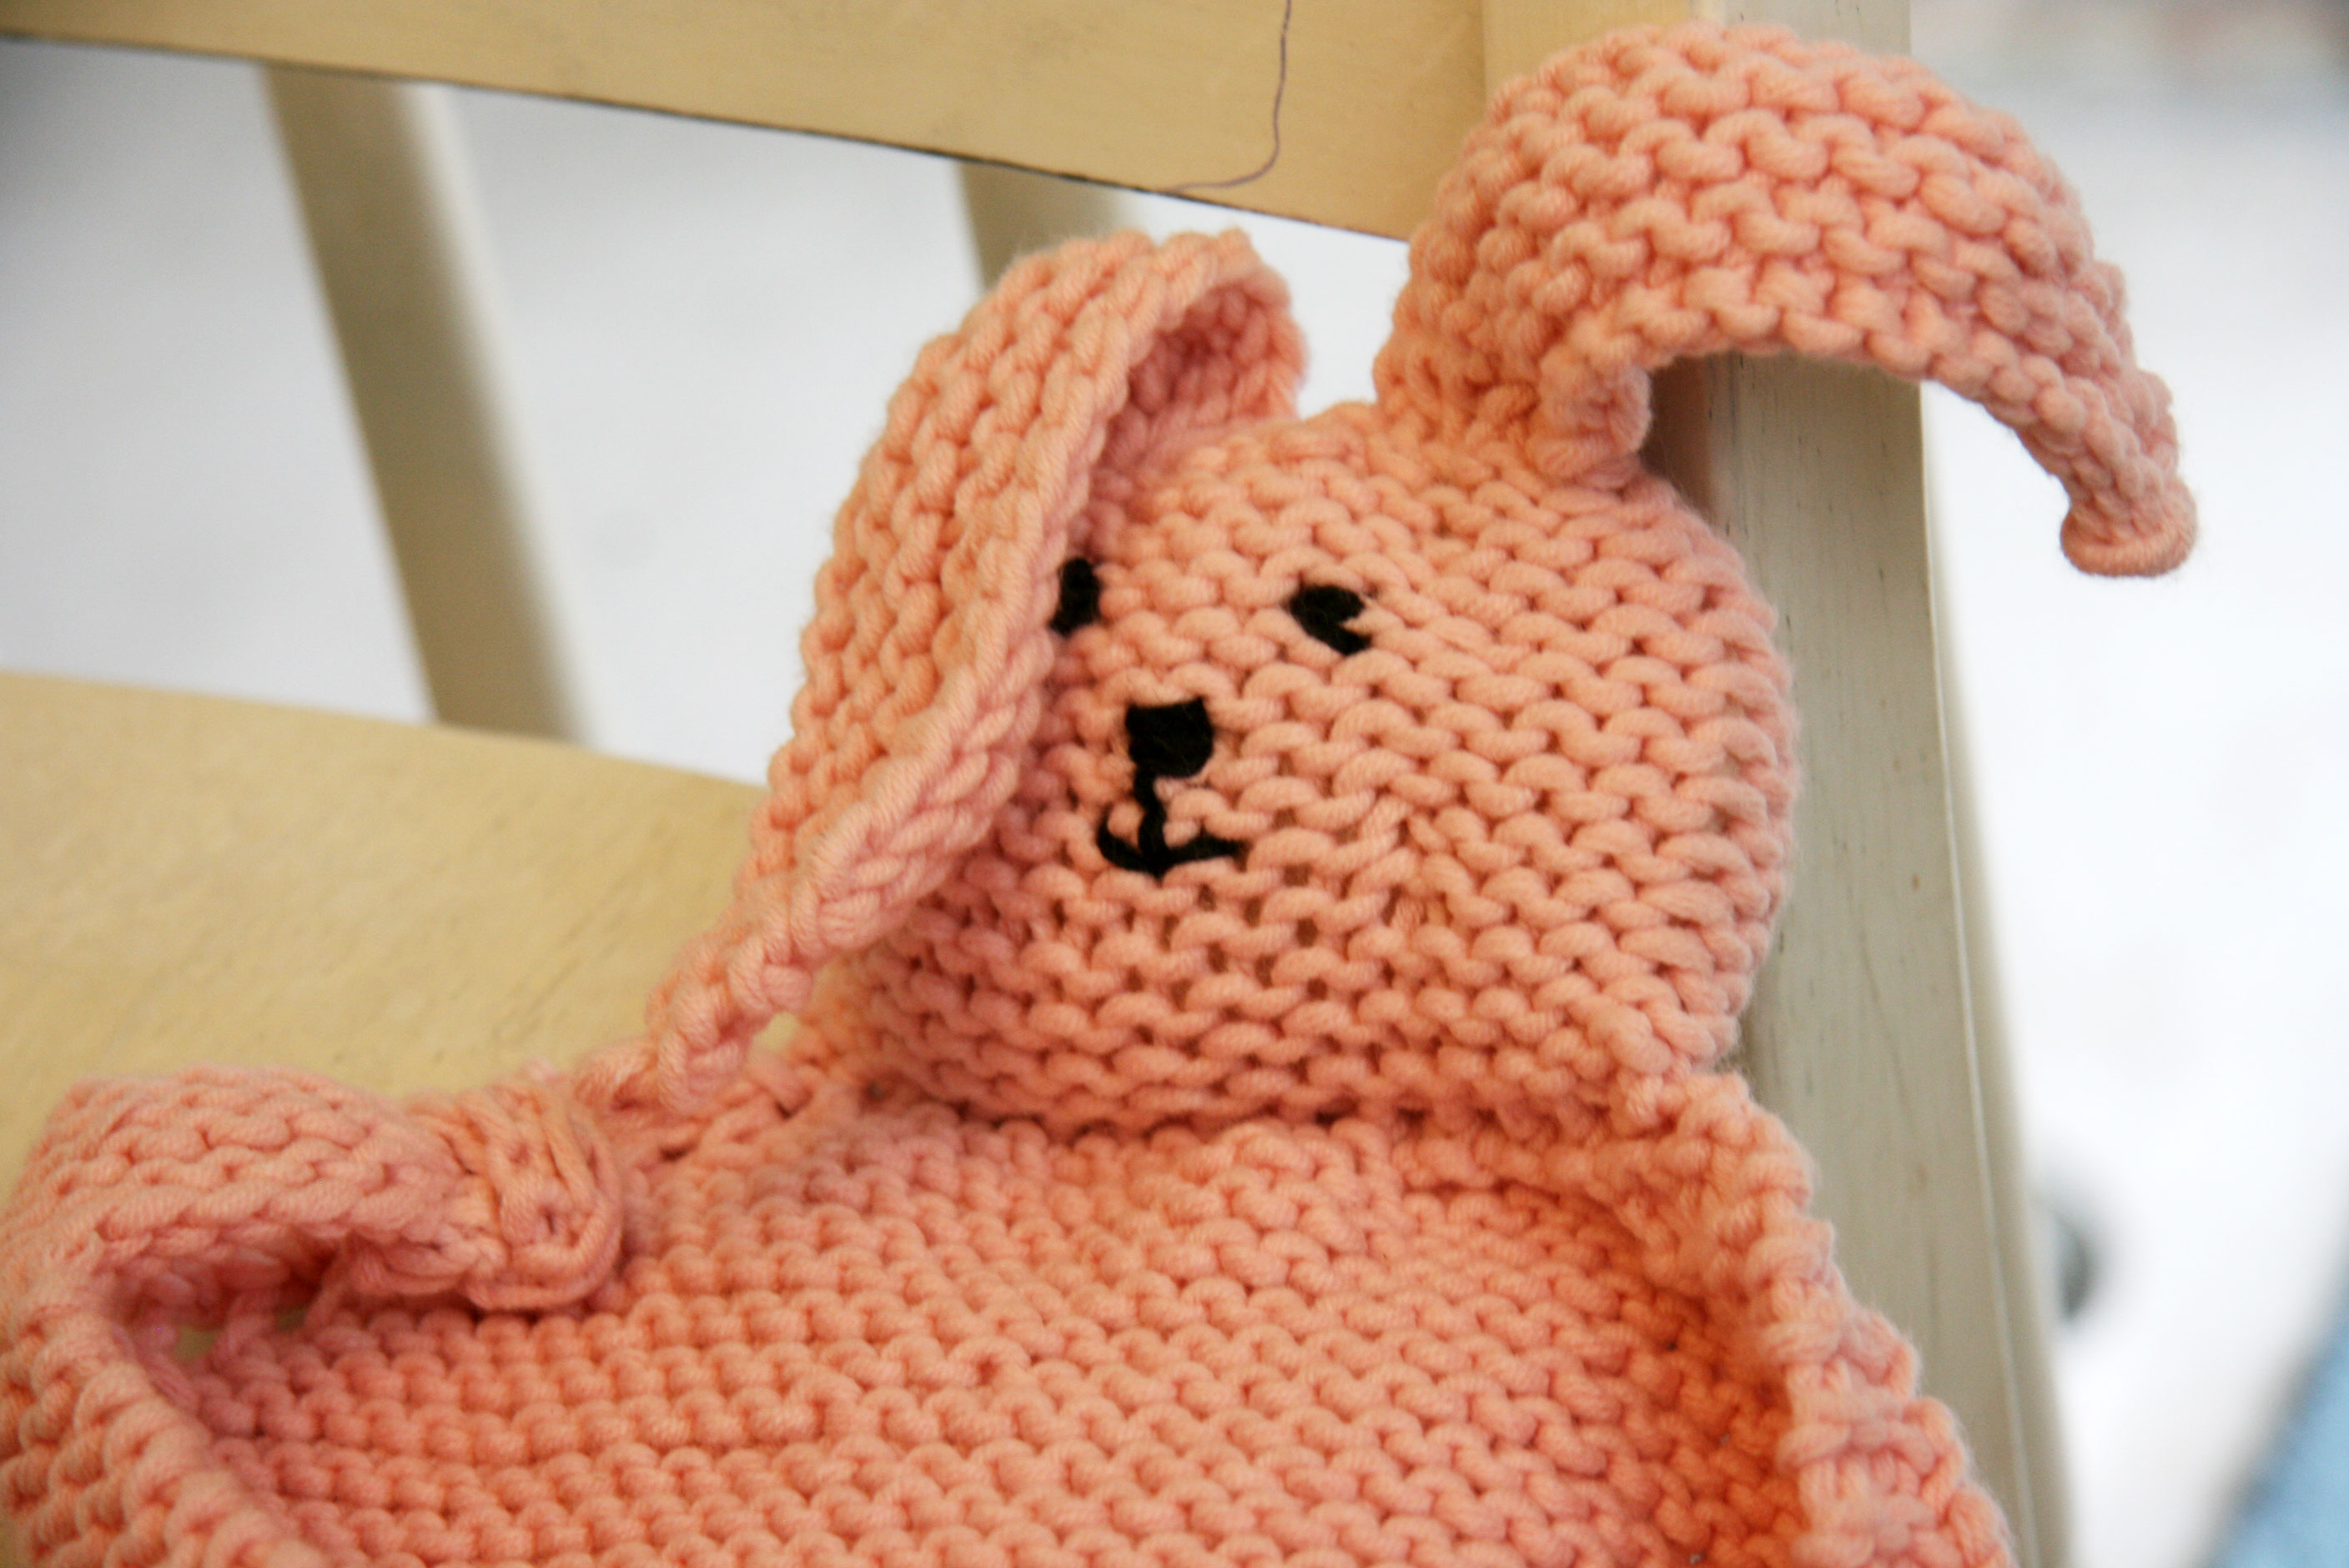 Bunny Blanket Knitting Pattern : Baby Bunny Blanket Buddy and Double Knitting! Cpeezers at Home